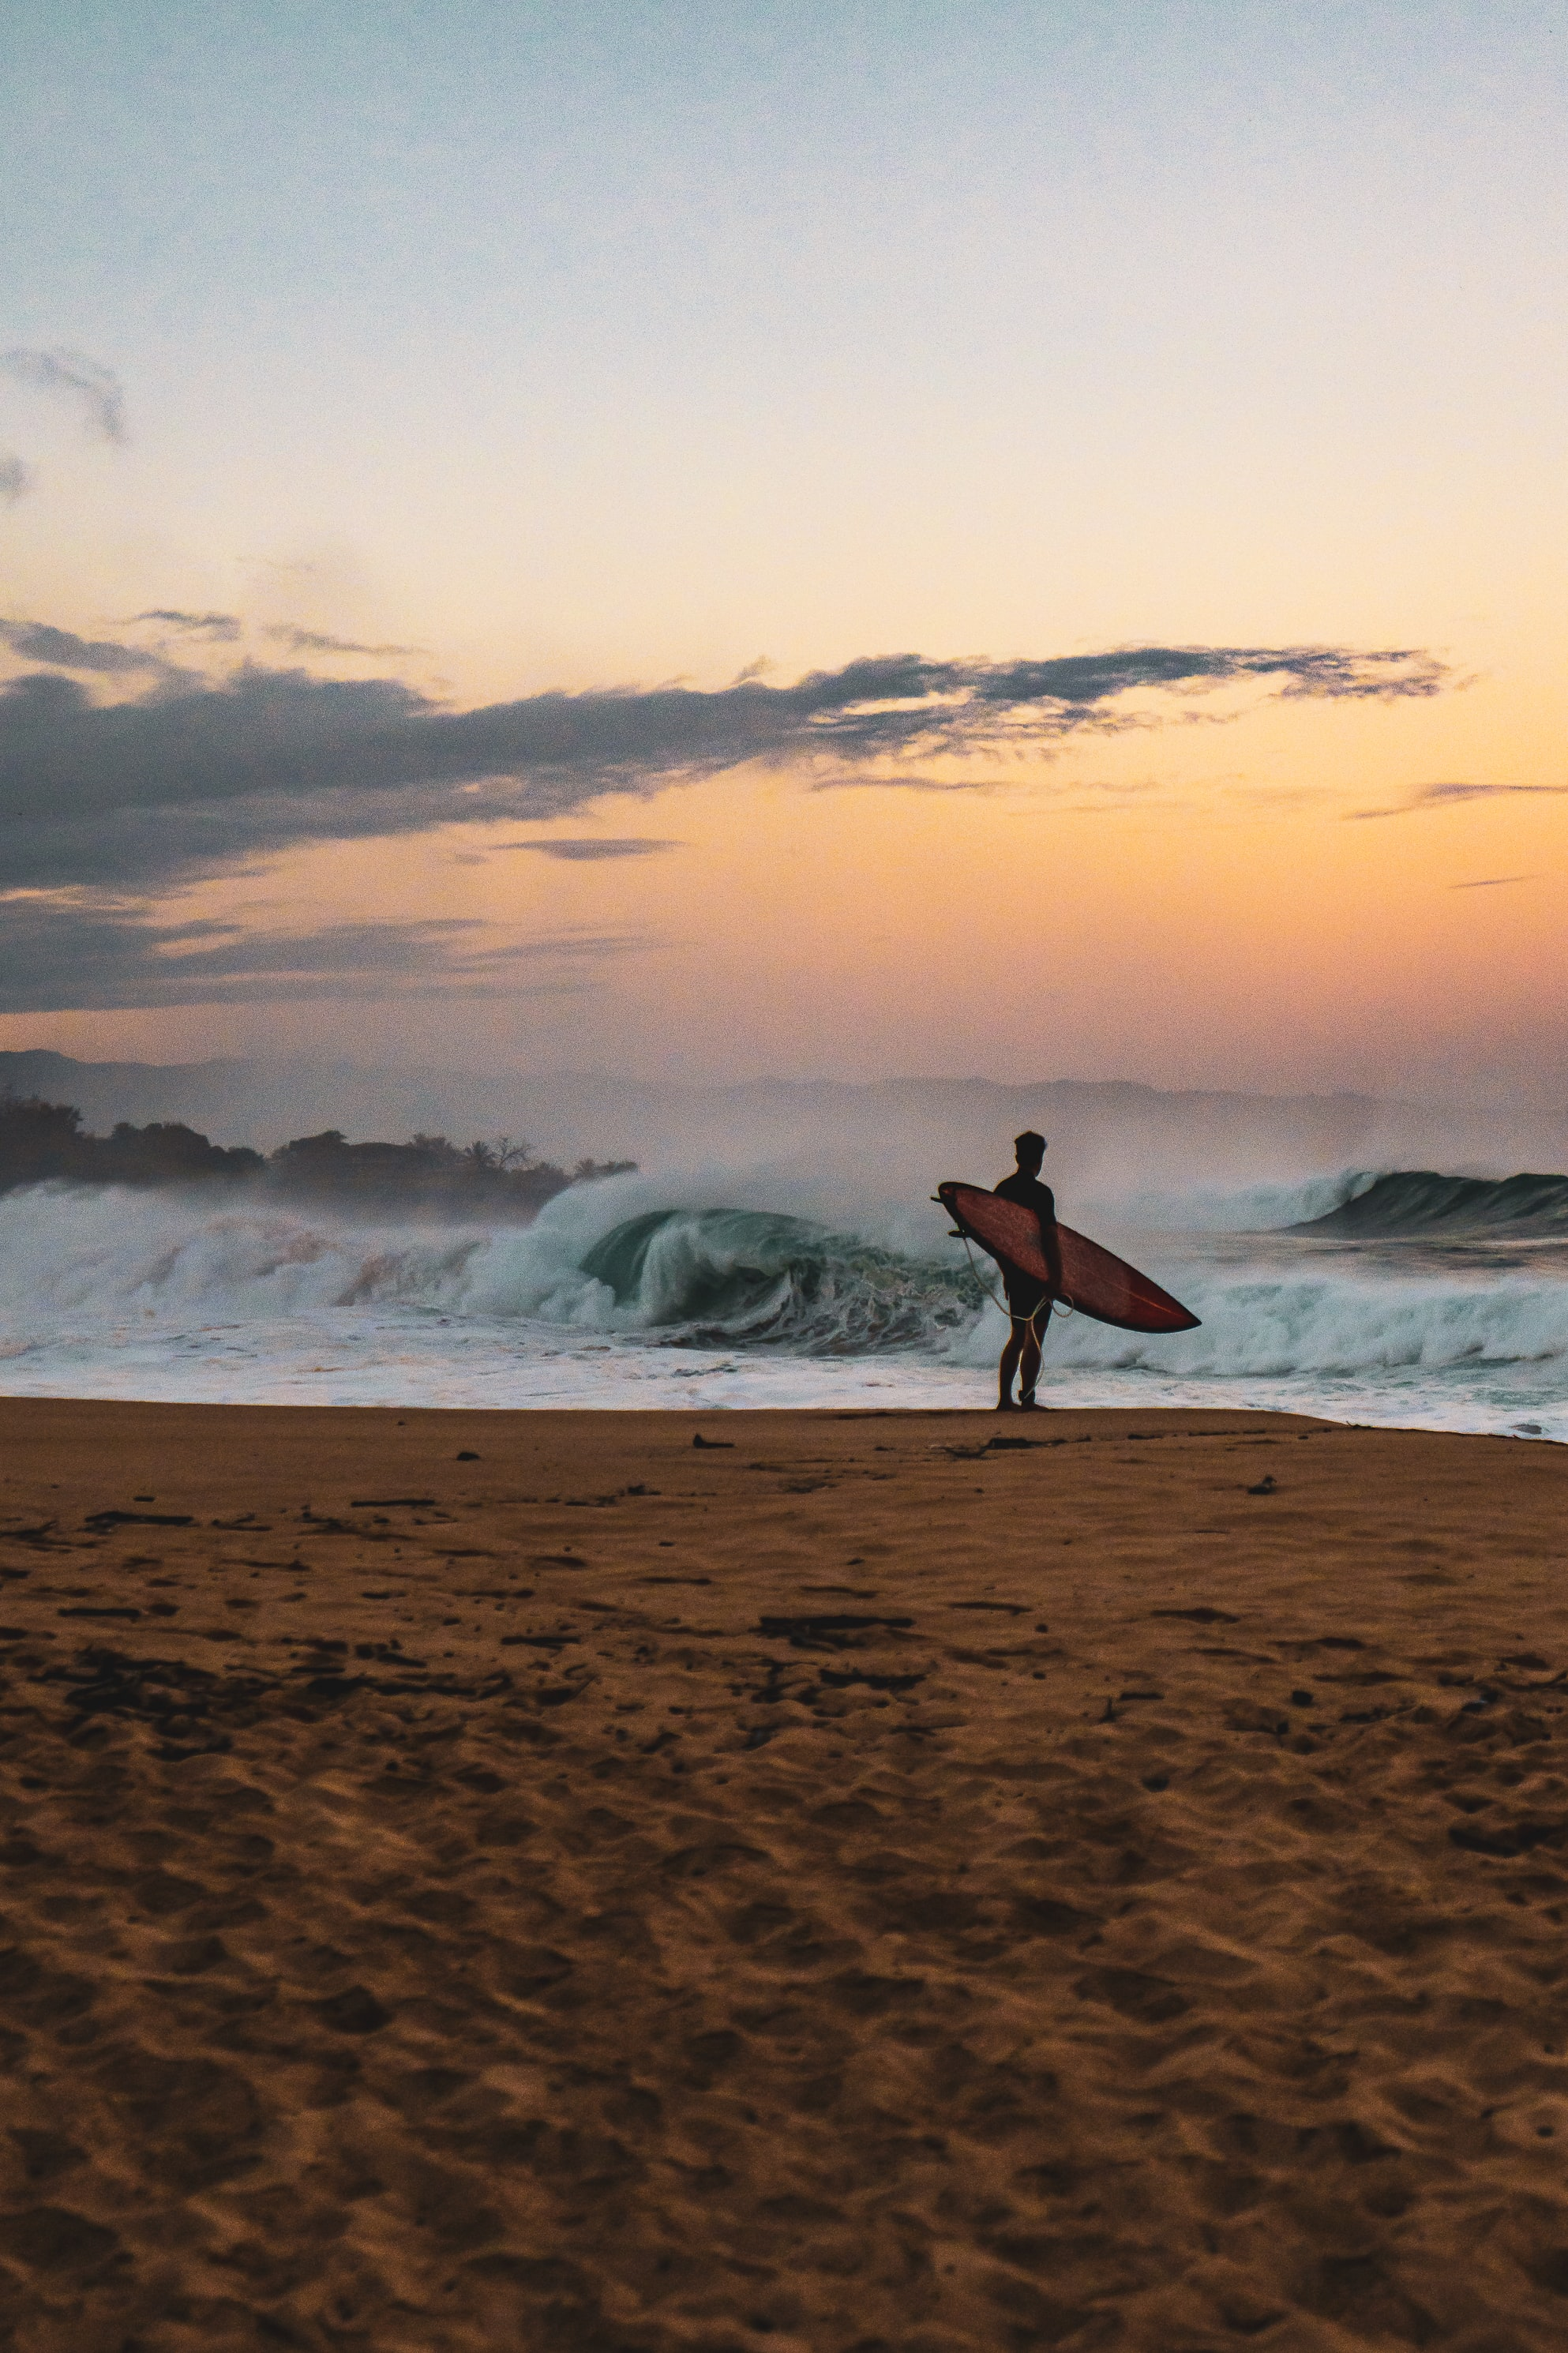 115447 download wallpaper Miscellanea, Miscellaneous, Surfer, Surfboard, Serfing, Beach, Wave, Ocean screensavers and pictures for free